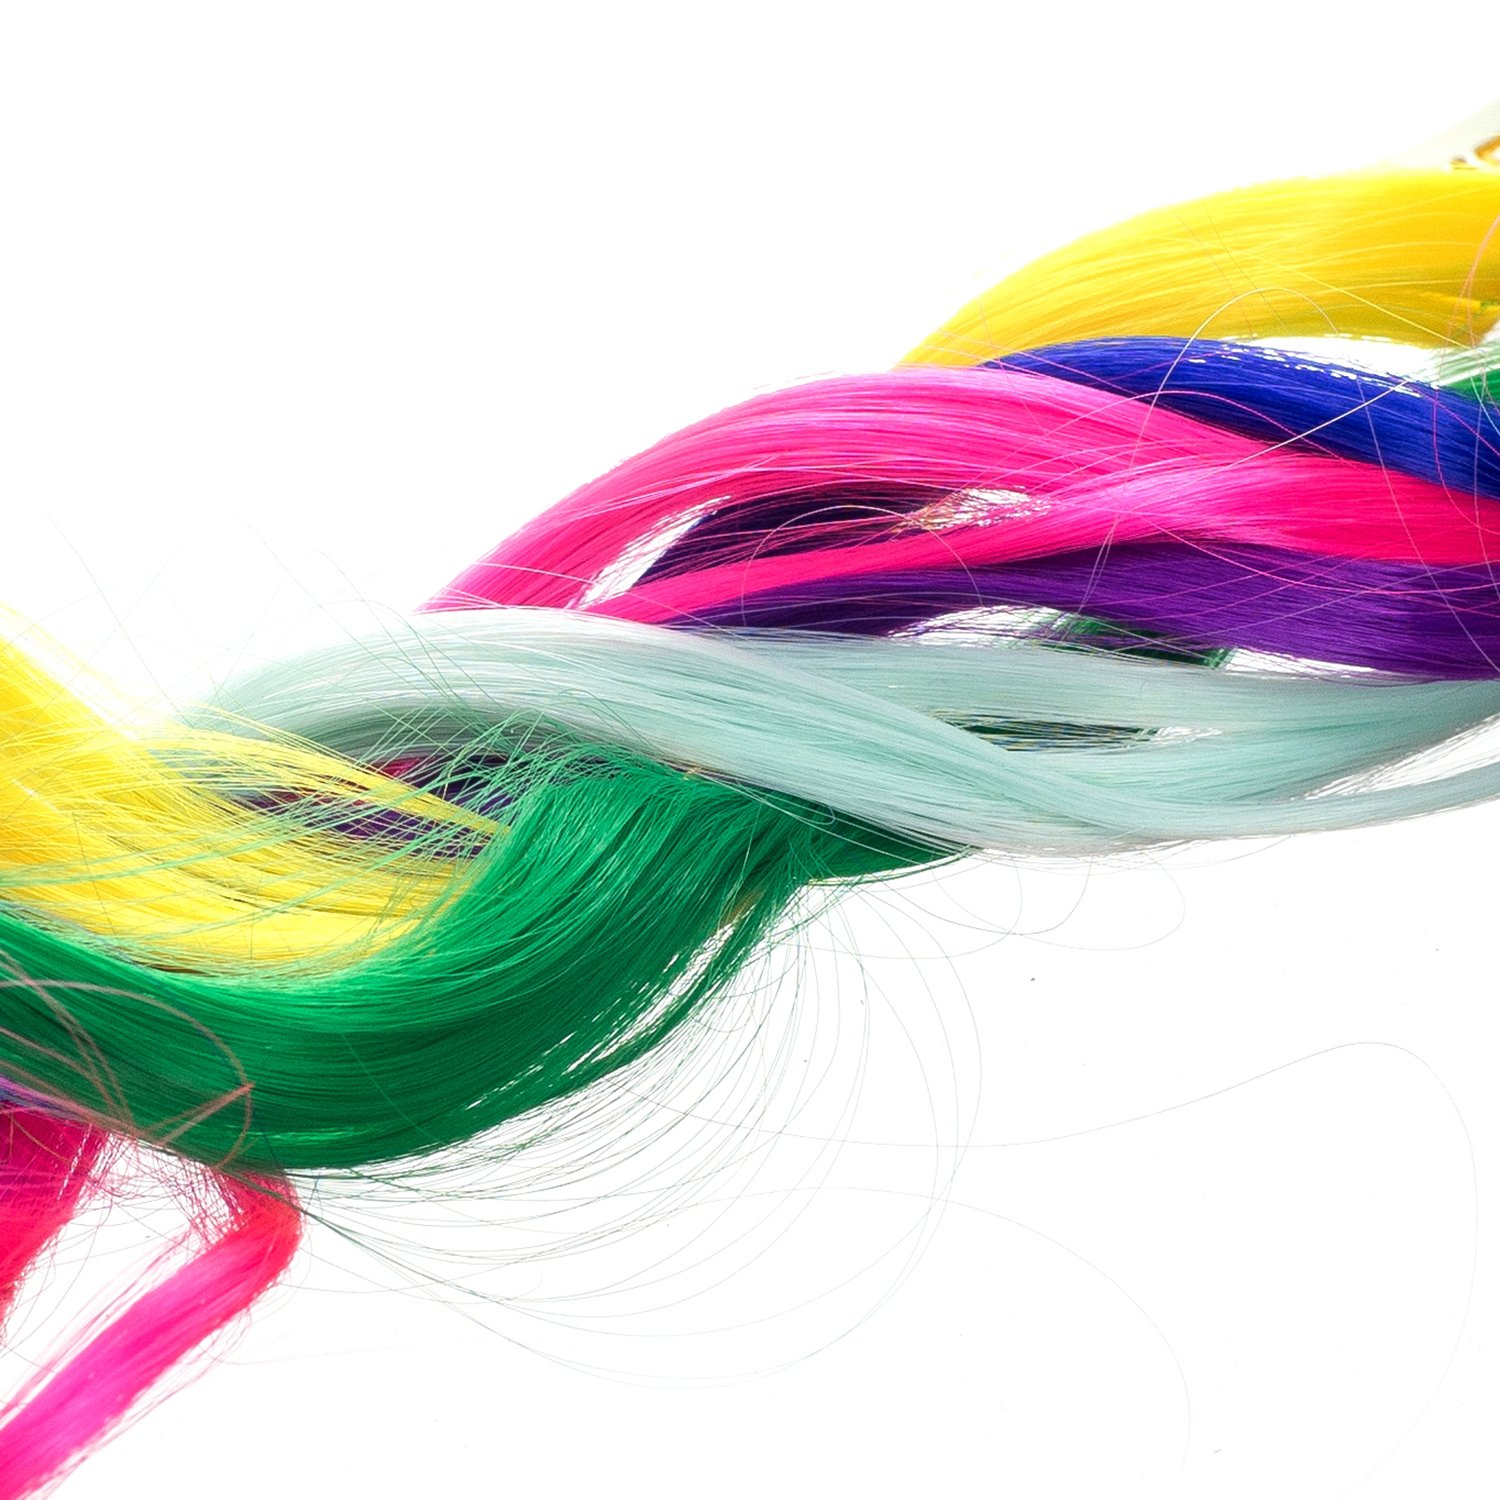 SWACC 22 Pcs Colored Party Highlights Clip on in Hair Extensions Multi-Colors Hair Streak Synthetic Hairpieces (11 Colors 22 Pcs in Set -Curly Wavy) by SWACC (Image #5)